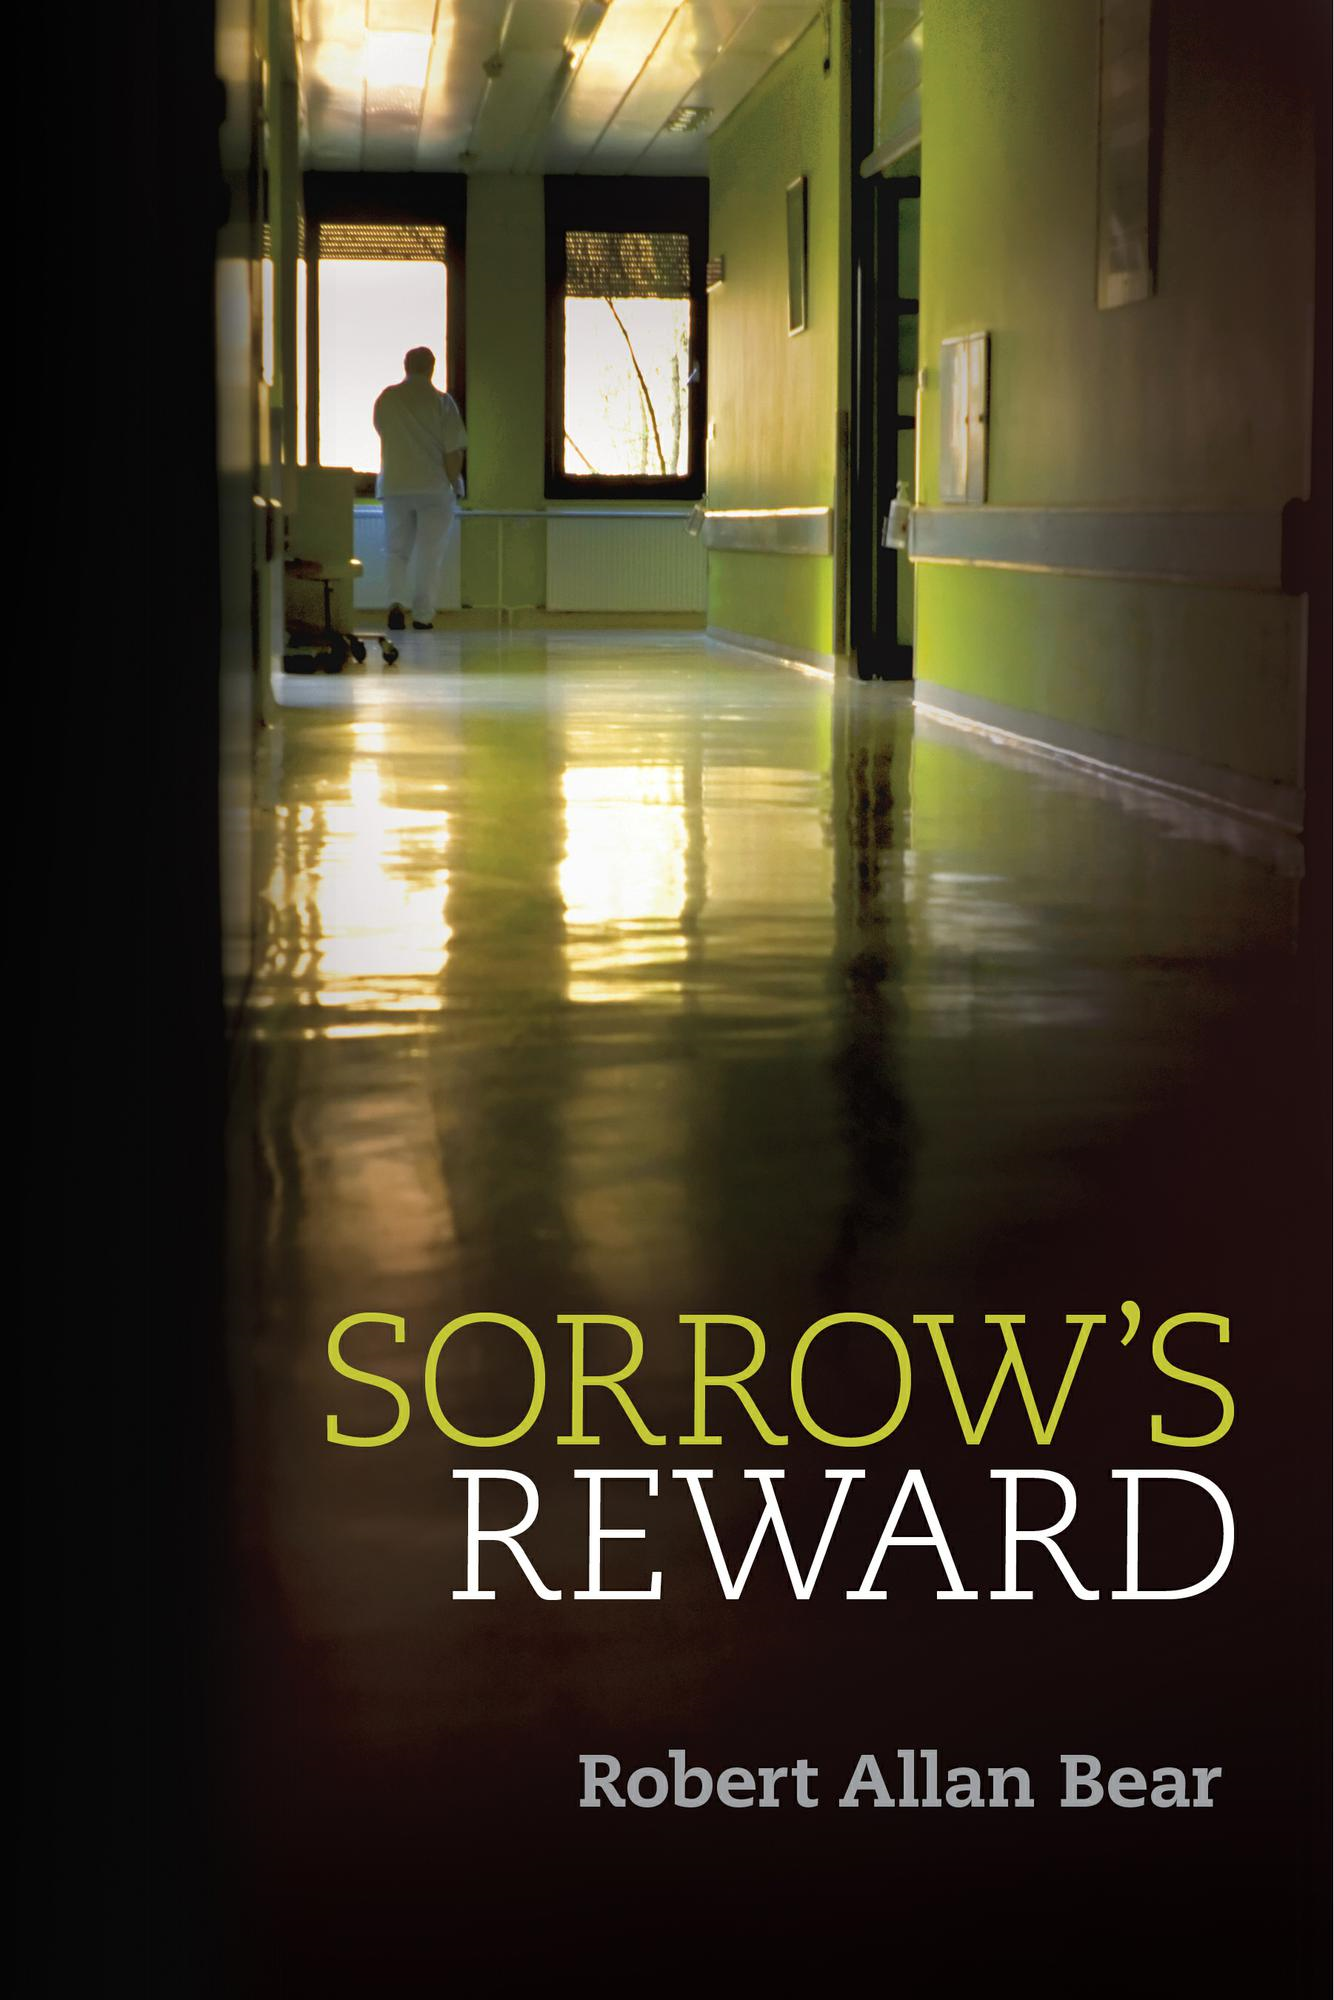 Sorrow's Reward